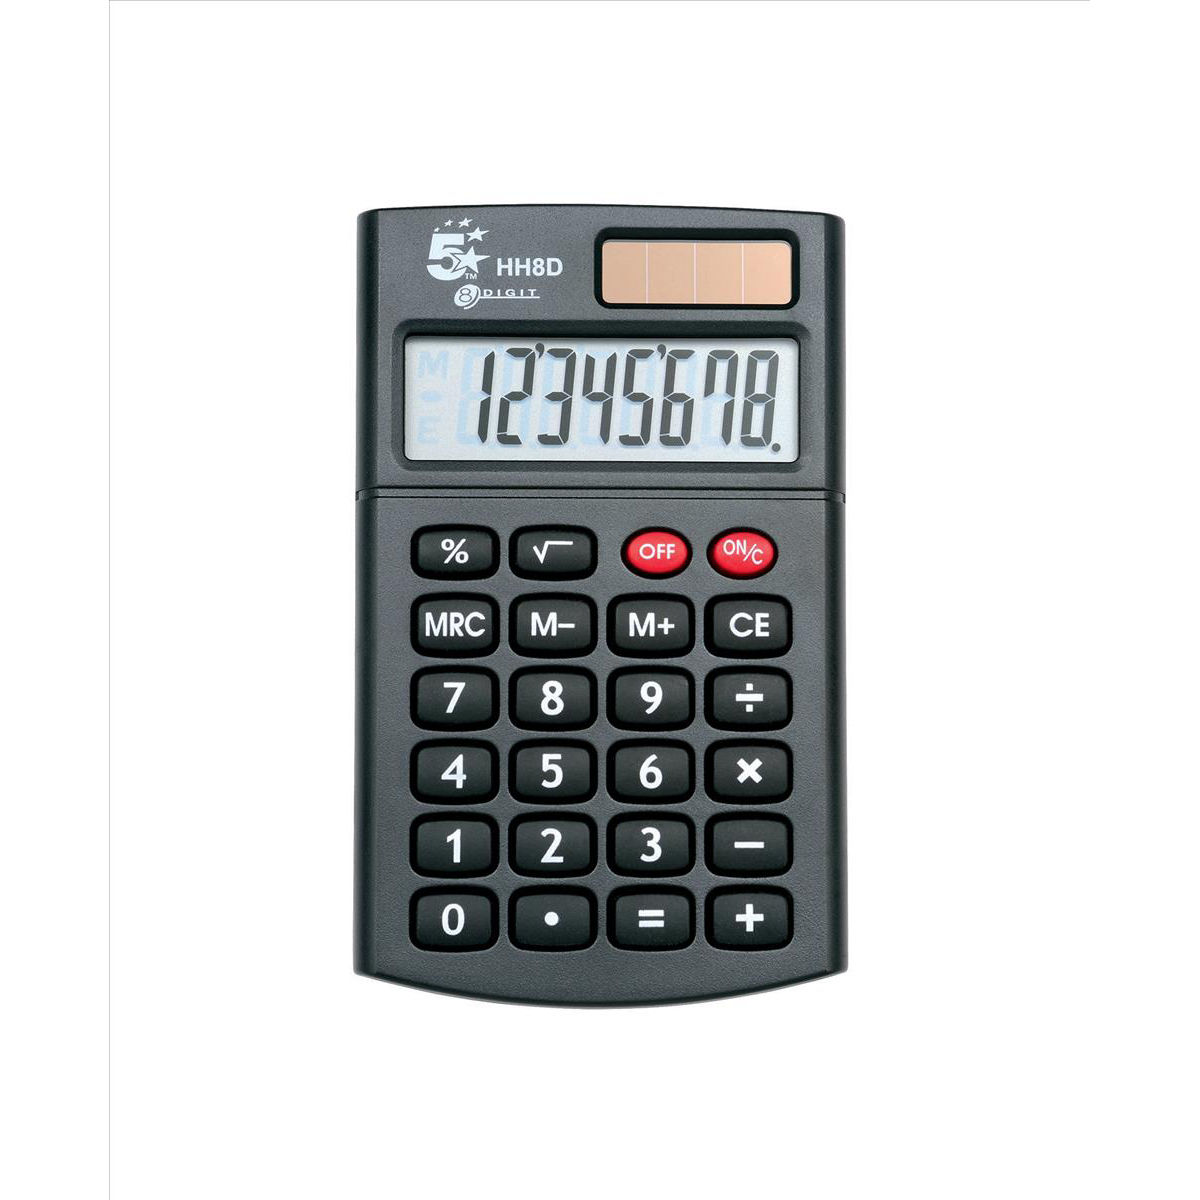 5 Star Office Calculator Handheld 8 Digit 3 Key Memory Battery-power Code HH8D